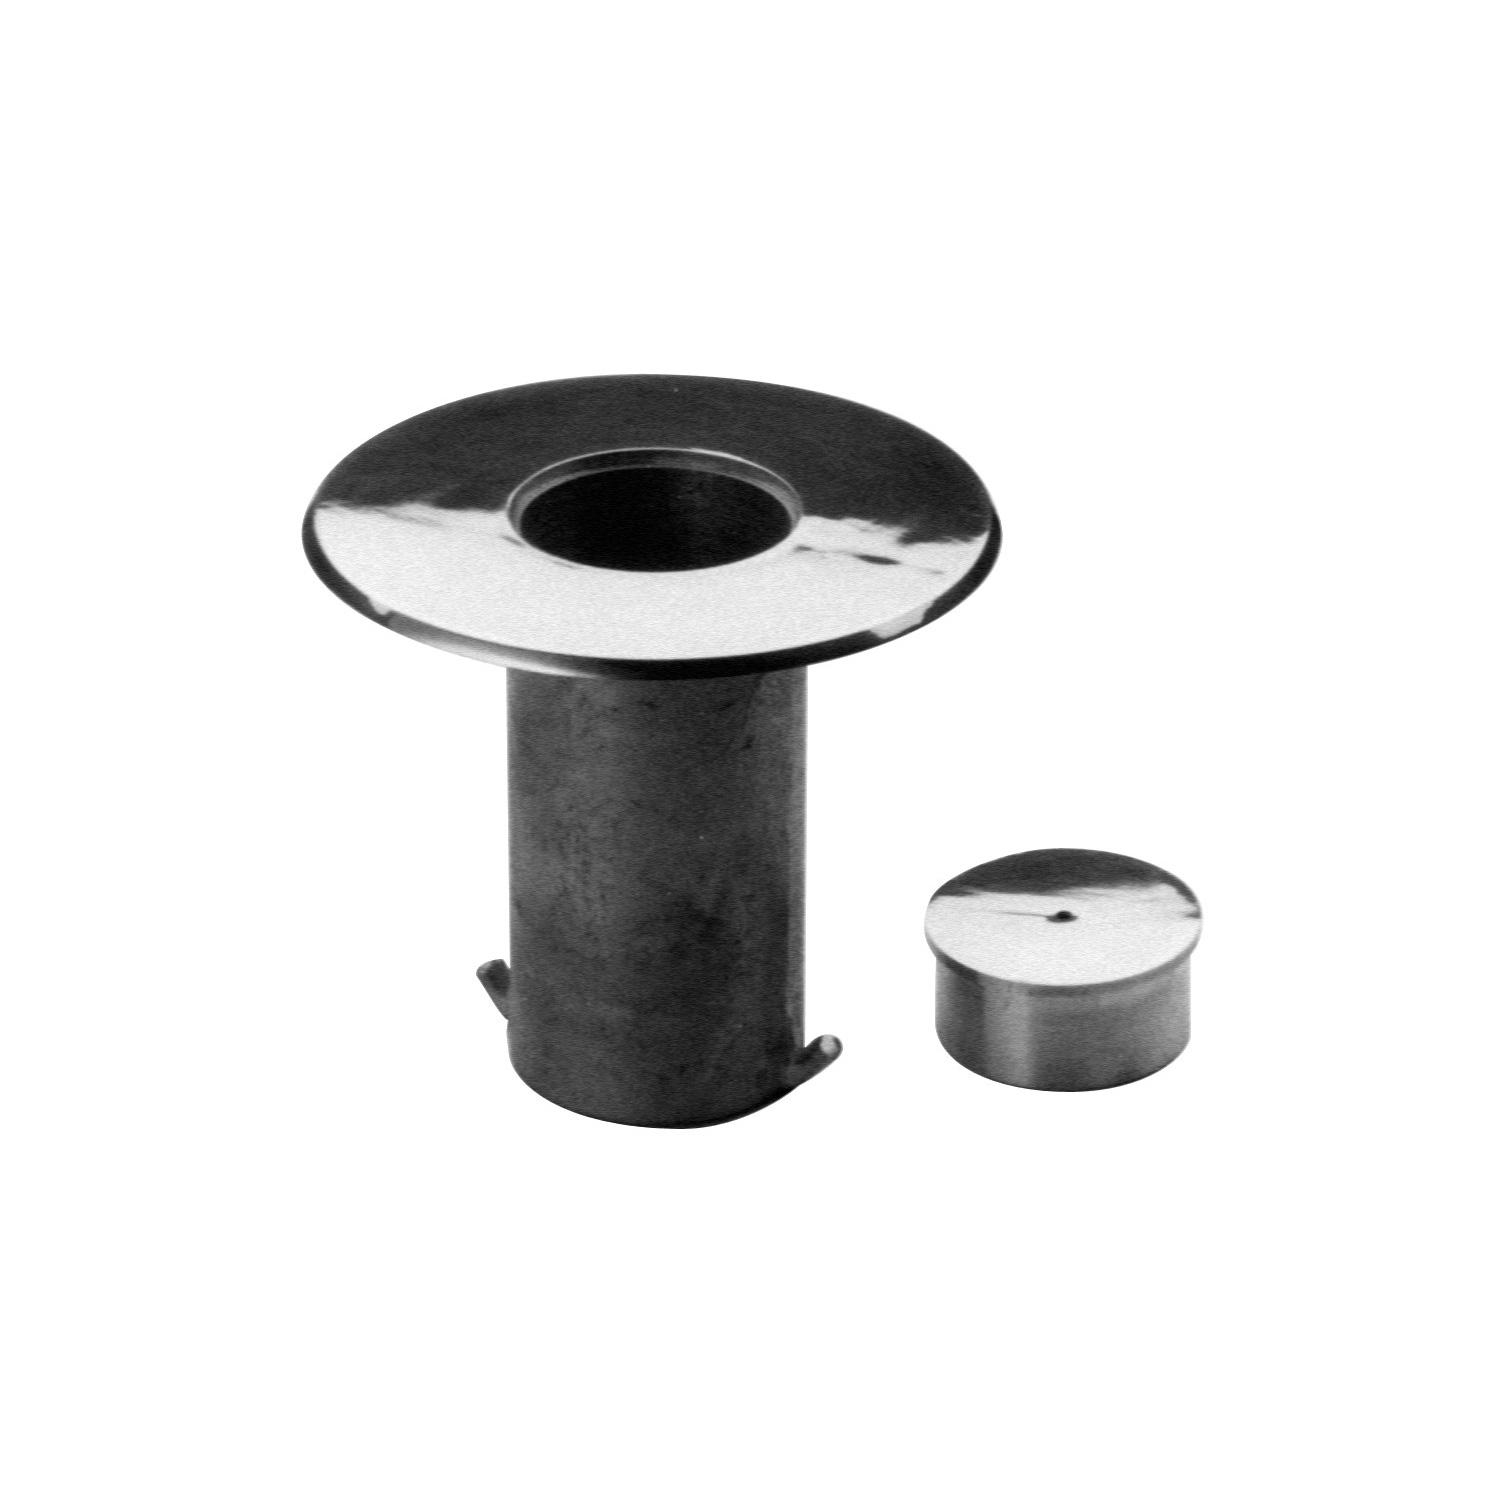 Satin Brushed Stainless Steel Floor Socket With Cap 2